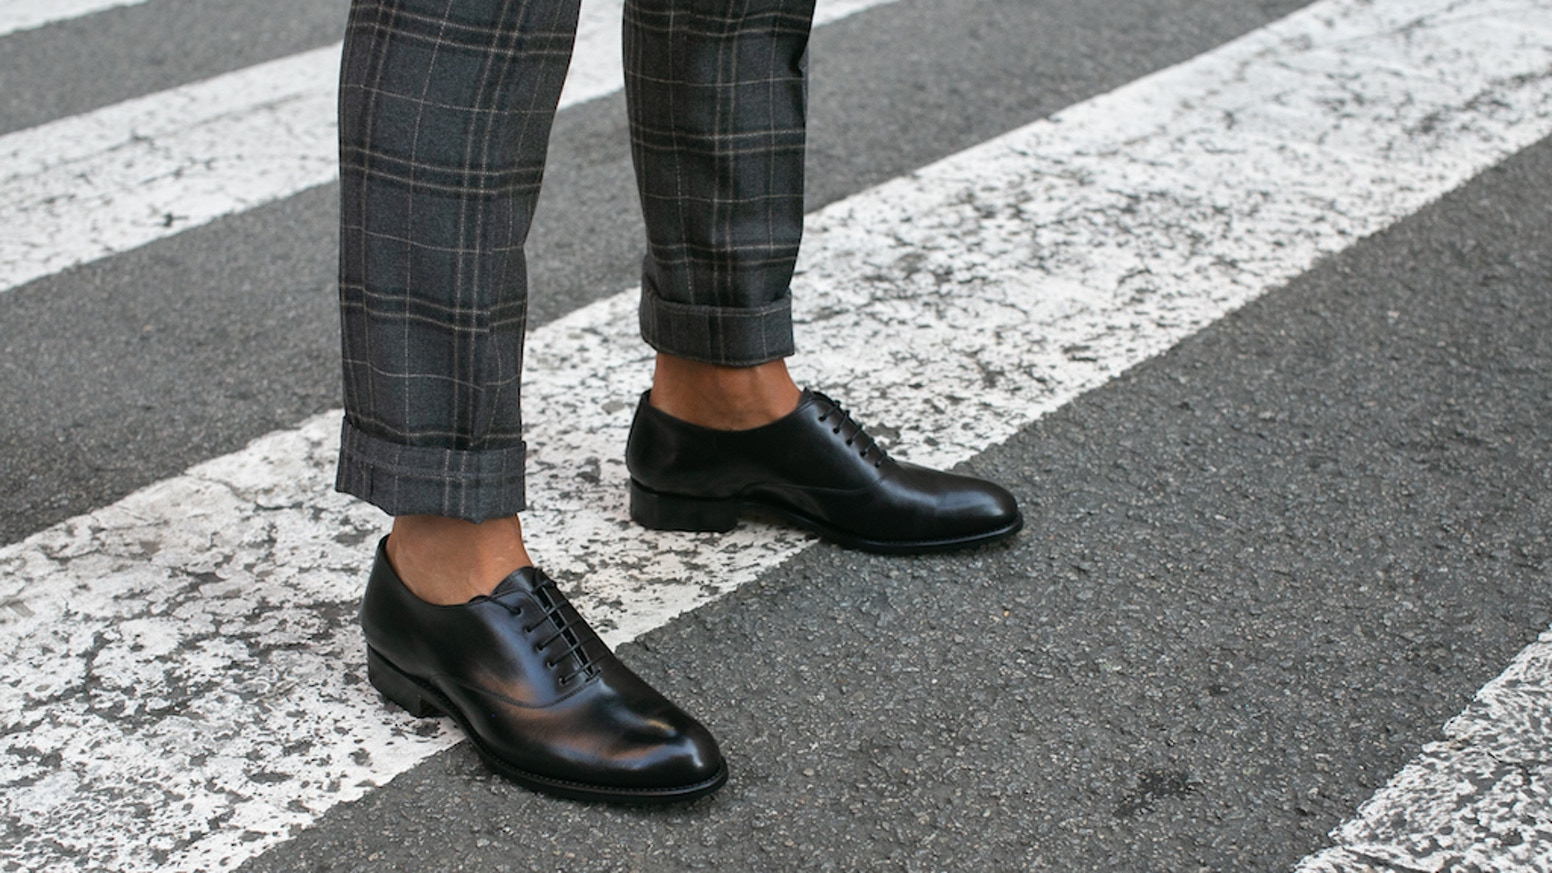 At Åpoint we believe there is a smarter way to buy and wear shoes. Let us help you make the right decision when picking your footwear